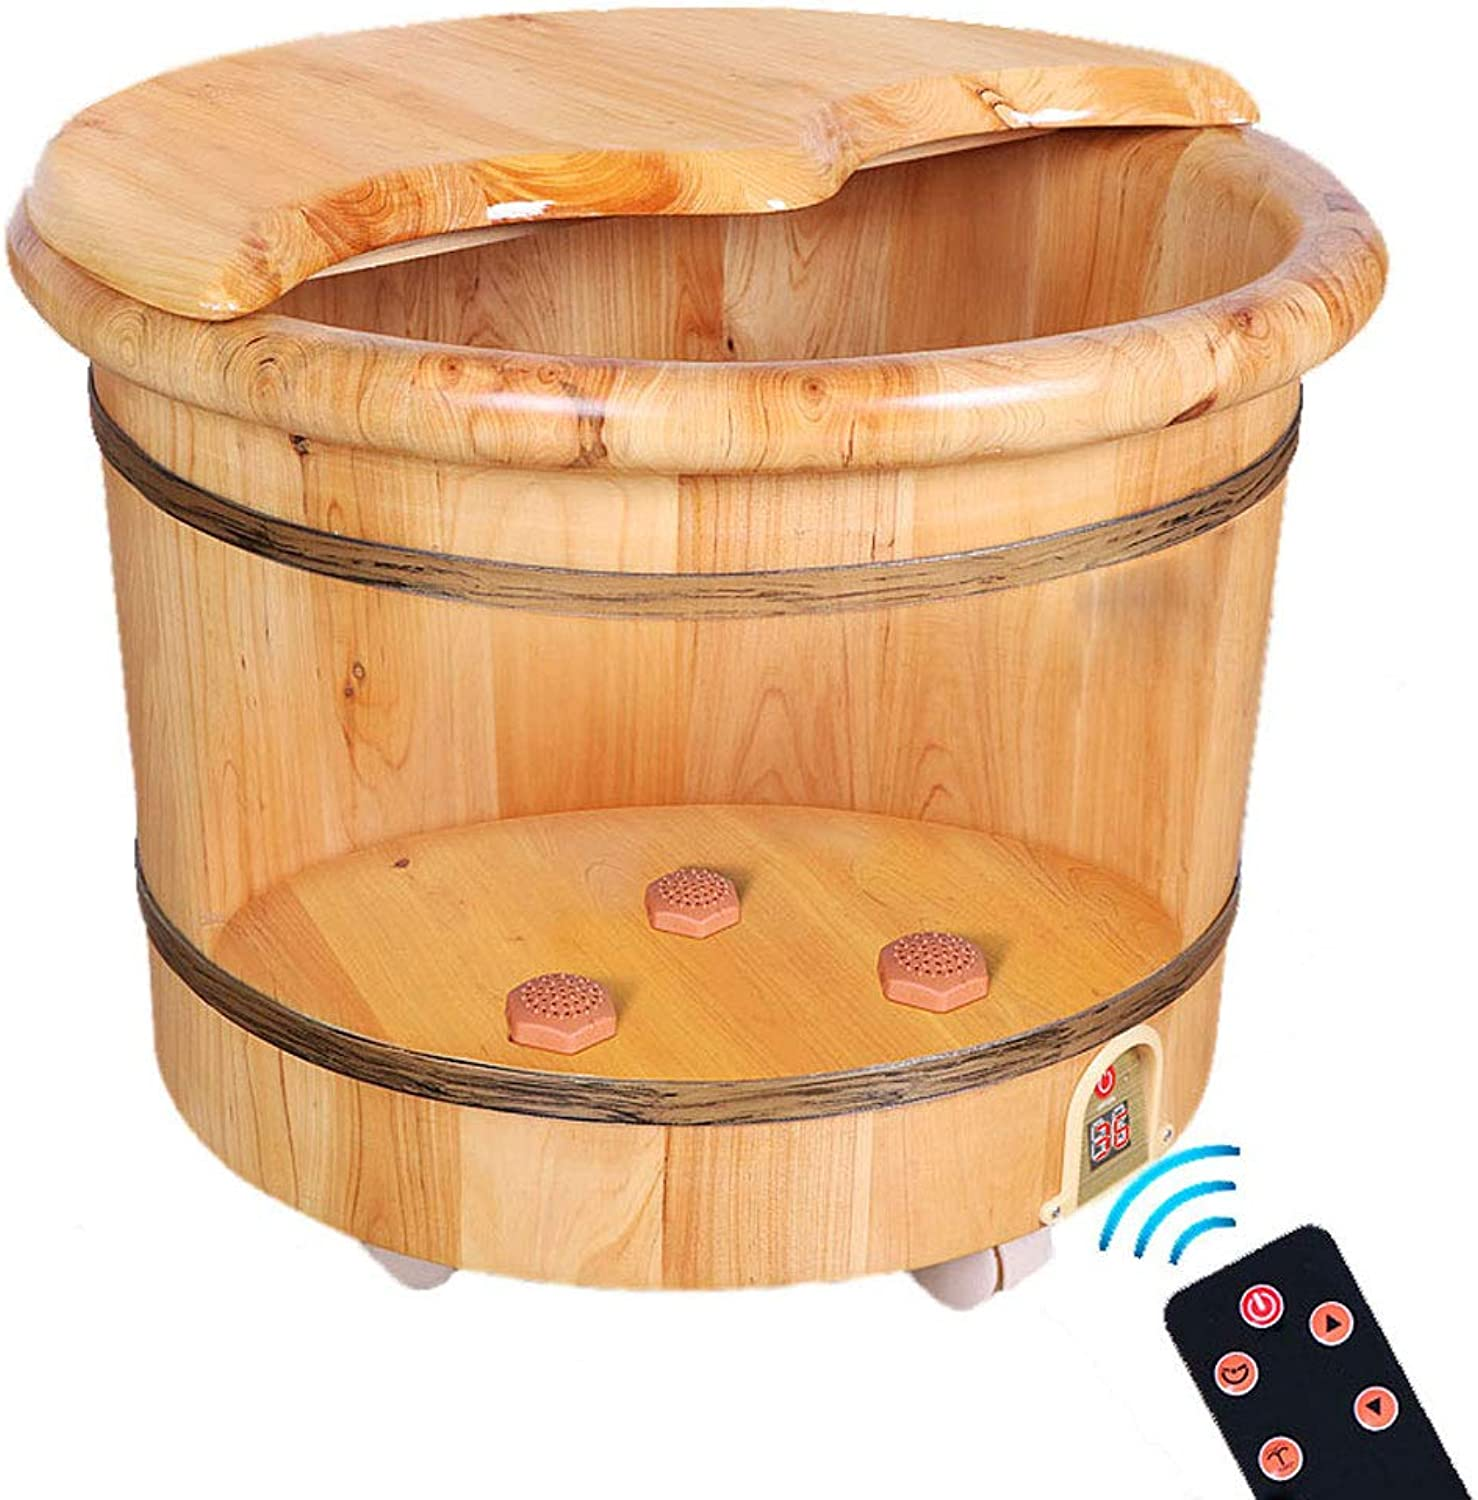 CJZYP123 Foot Tub, Constant Temperature Heating Foot Bath Barrel Foot Washing Home Insulation Intelligent Remote Control Operation